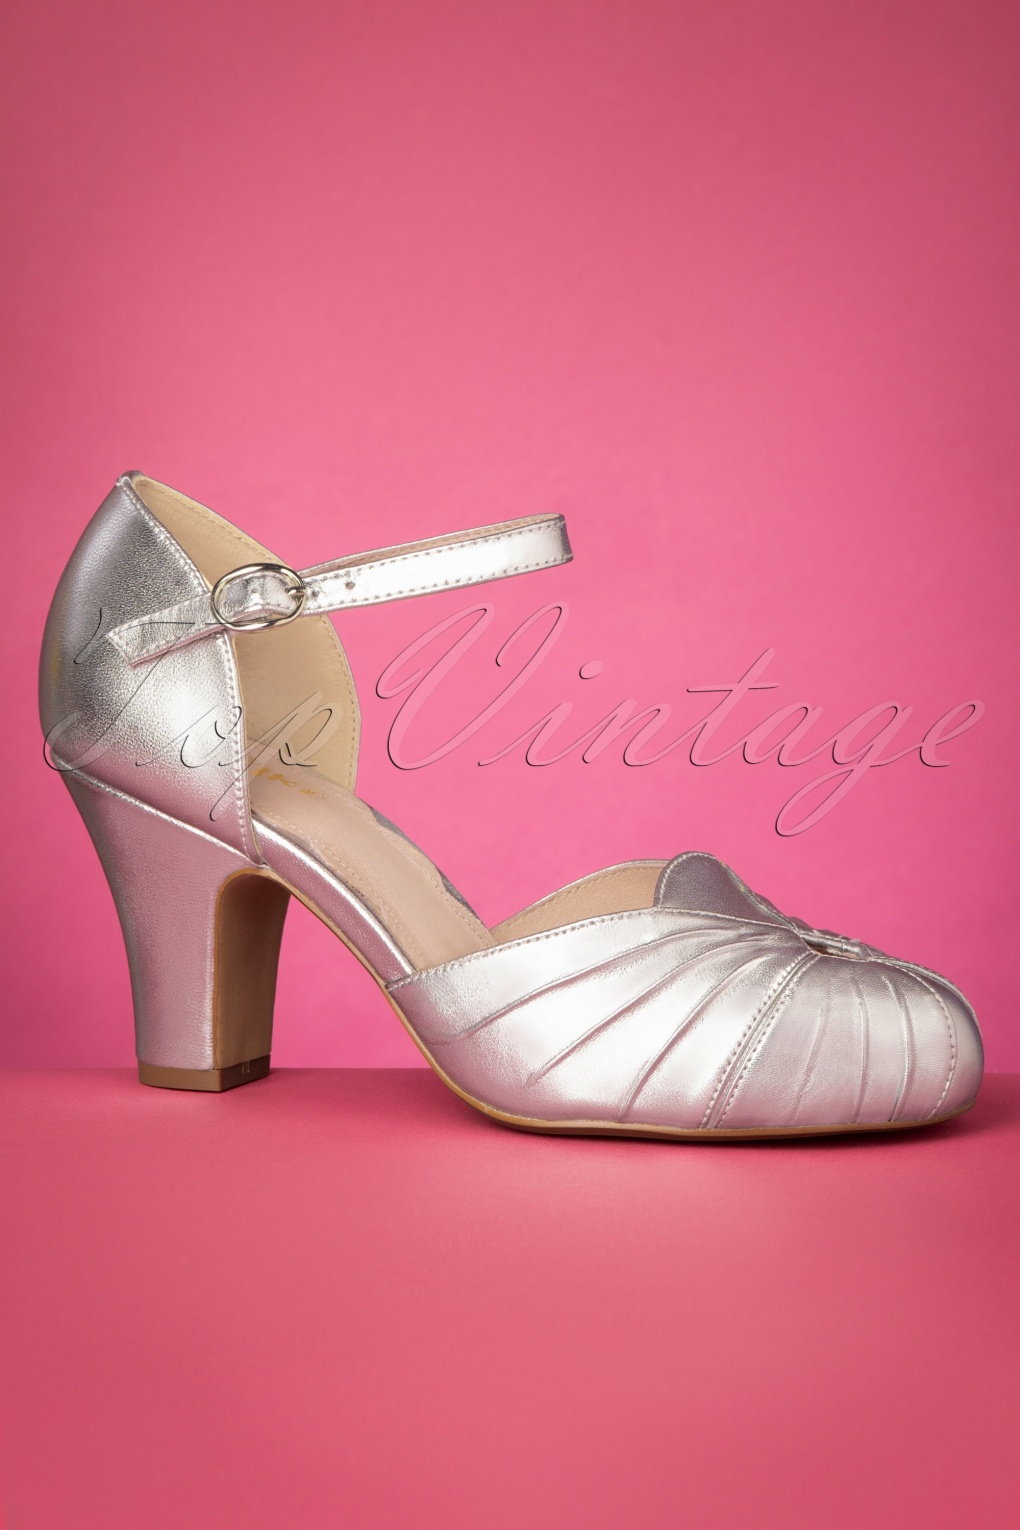 Vintage Heels, Retro Heels, Pumps, Shoes 40s Amber Mary Jane Pumps in Silver £158.39 AT vintagedancer.com